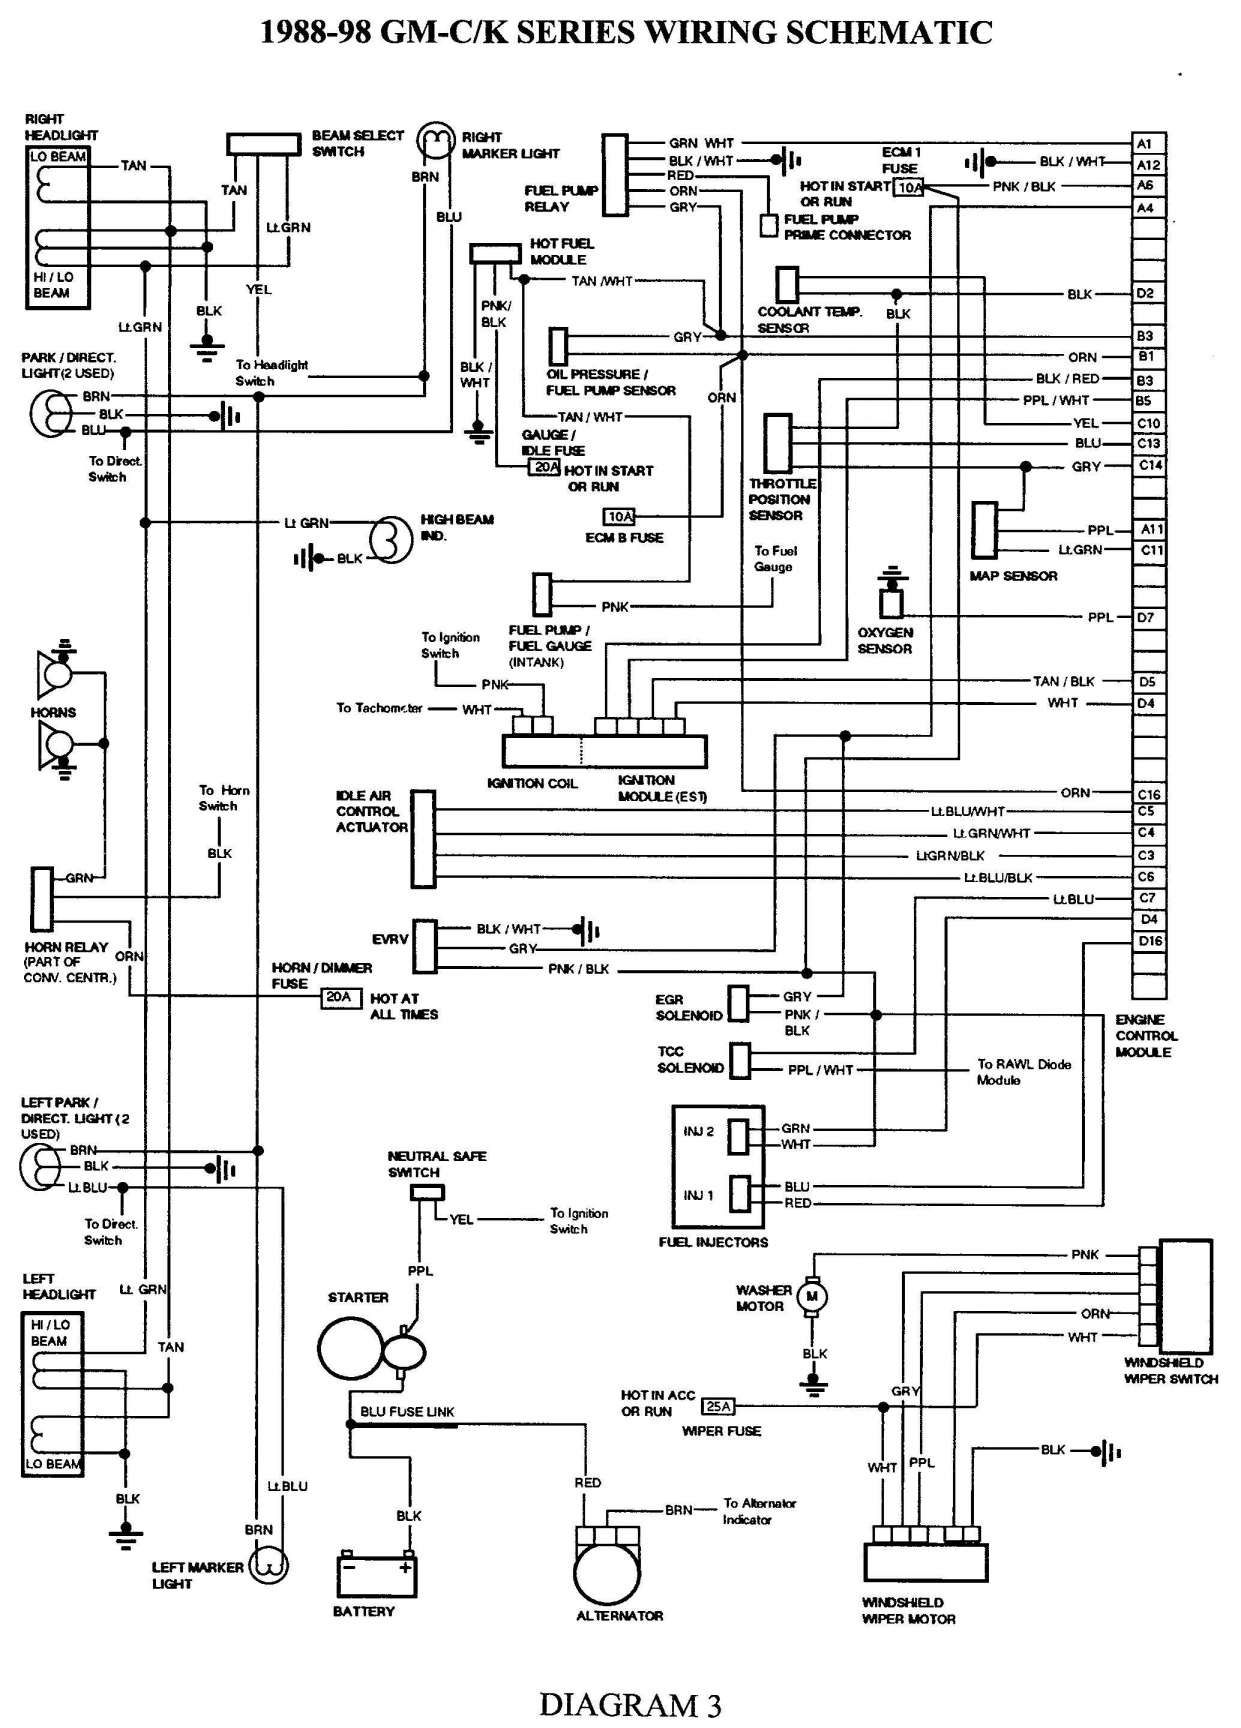 10+ 1994 Gmc Sierra V6 Full Engine Wiring Diagram,Engine Diagram -  Wiringg.net in 2020 | Electrical diagram, Electrical wiring diagram, Chevy  1500Pinterest